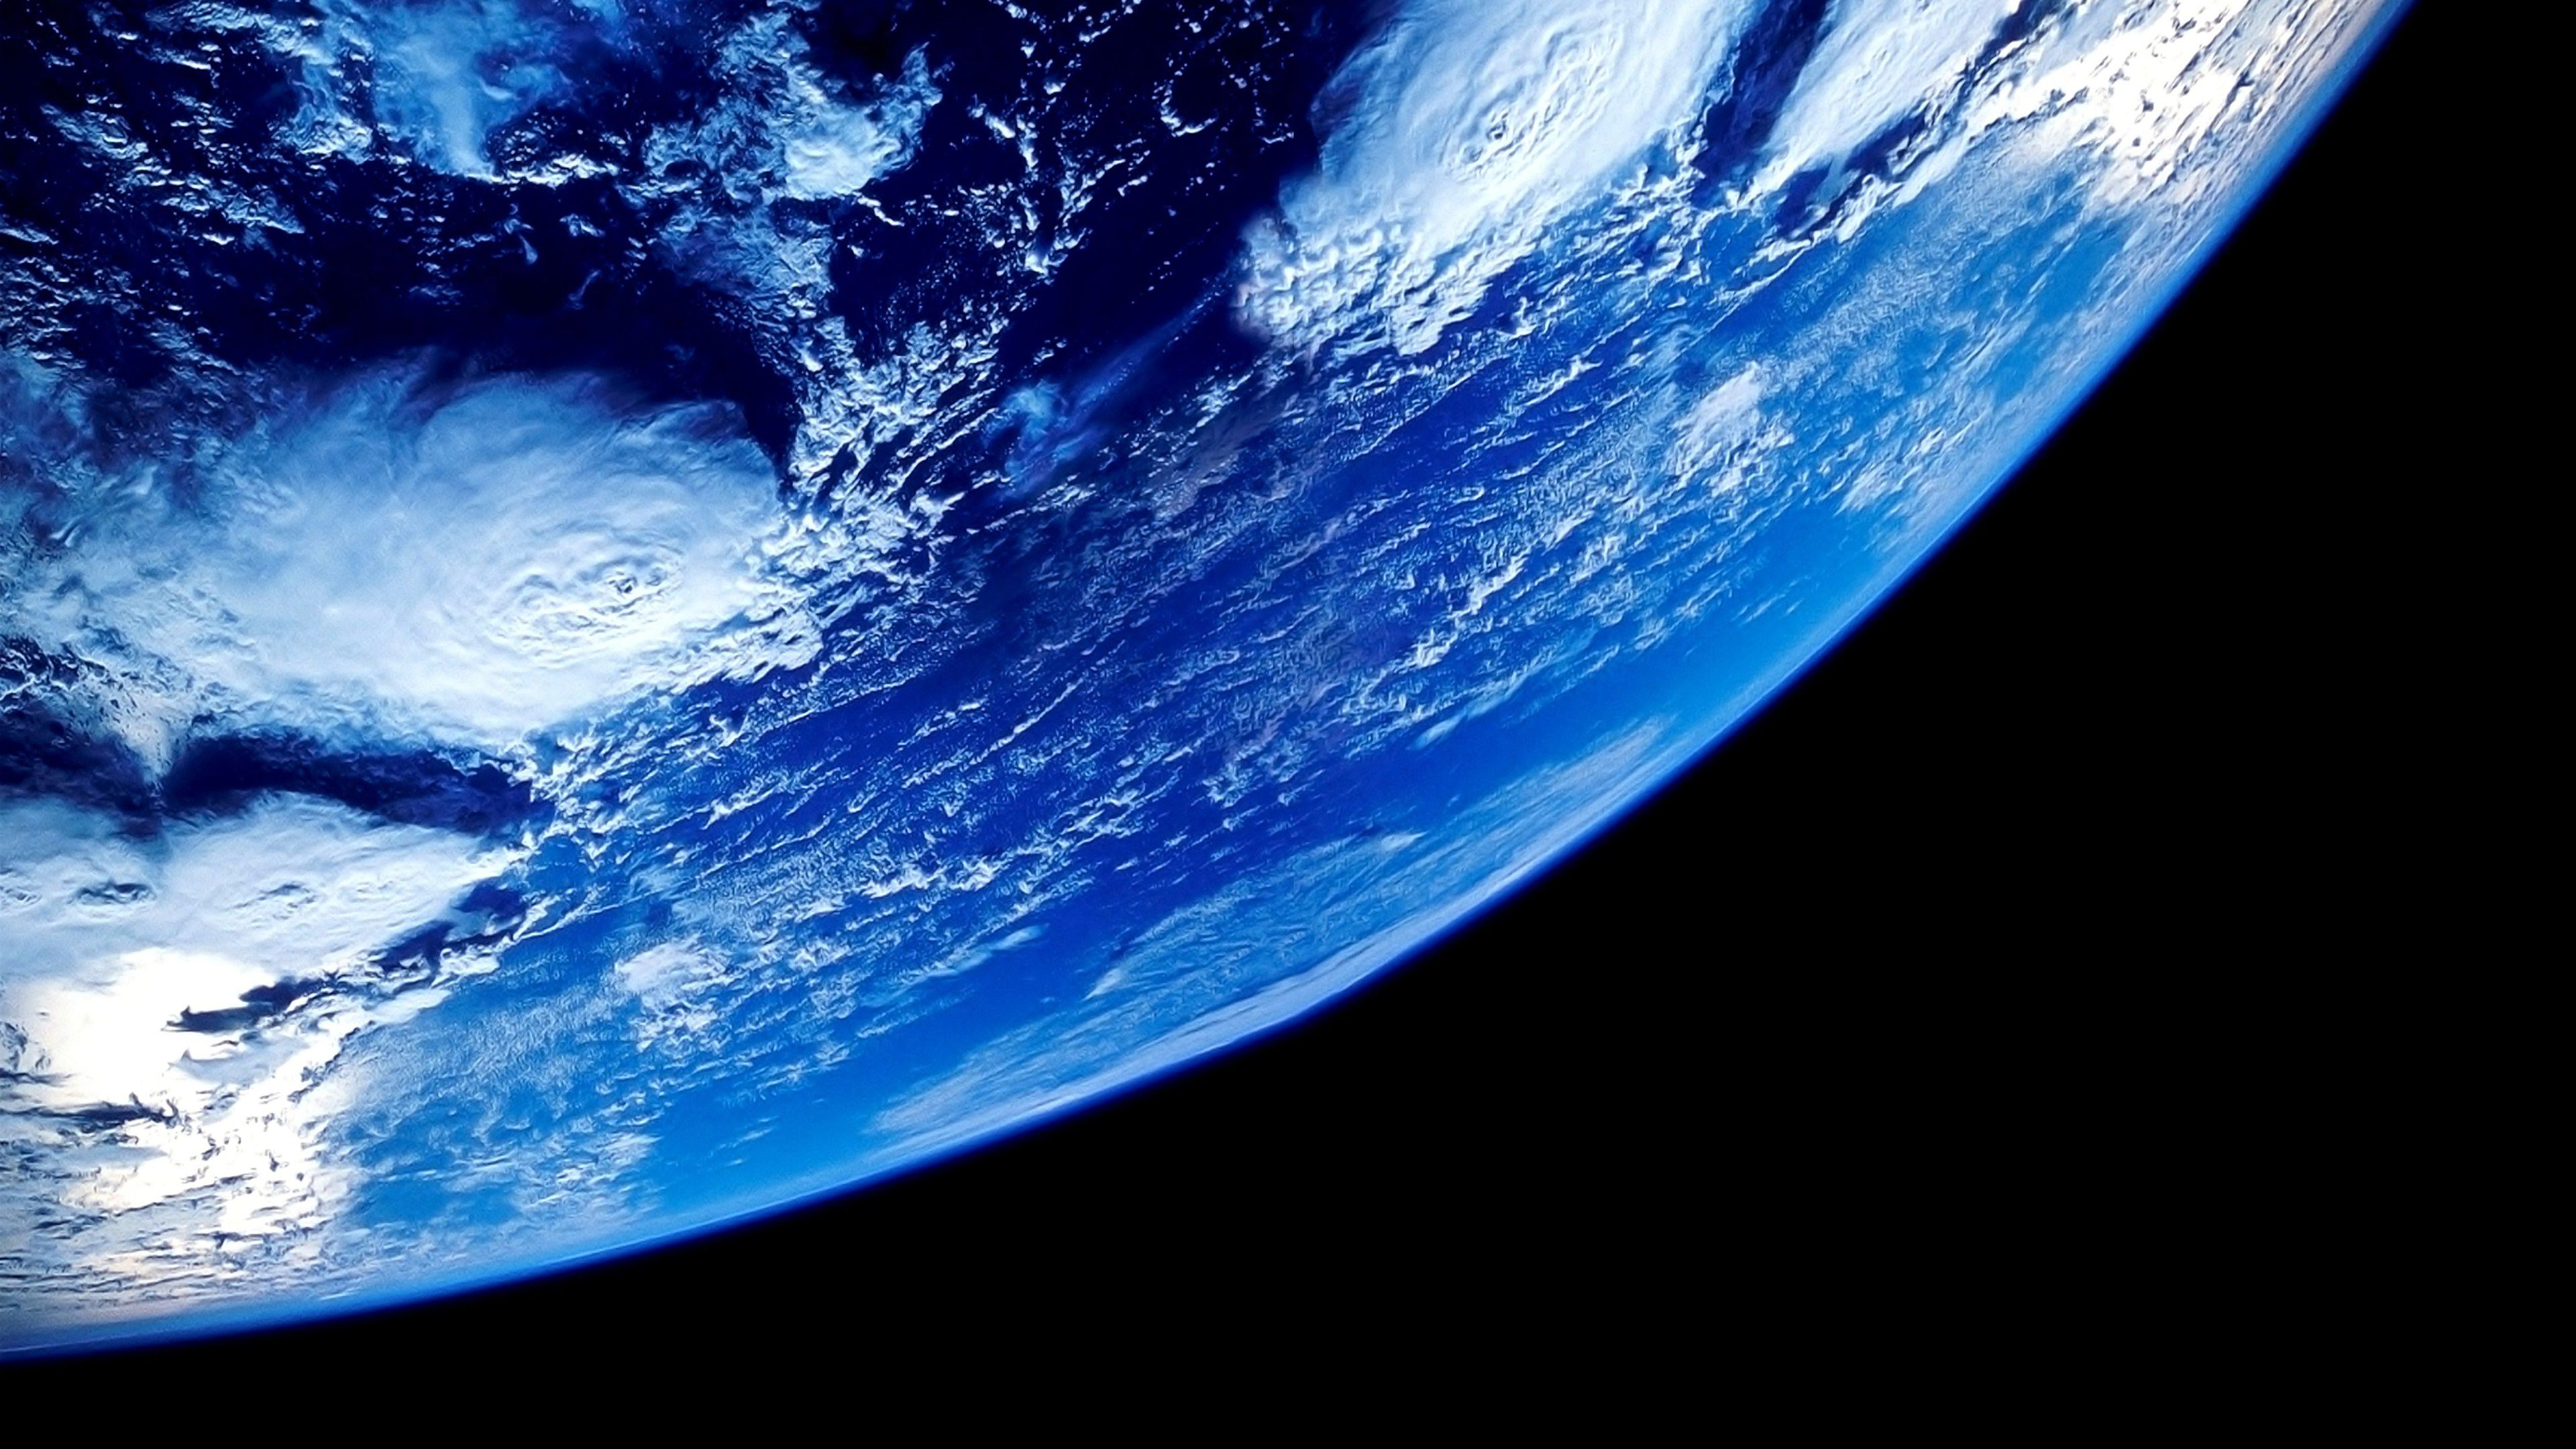 Earth View in space 4k hd wallpaper Wallpapers para pc